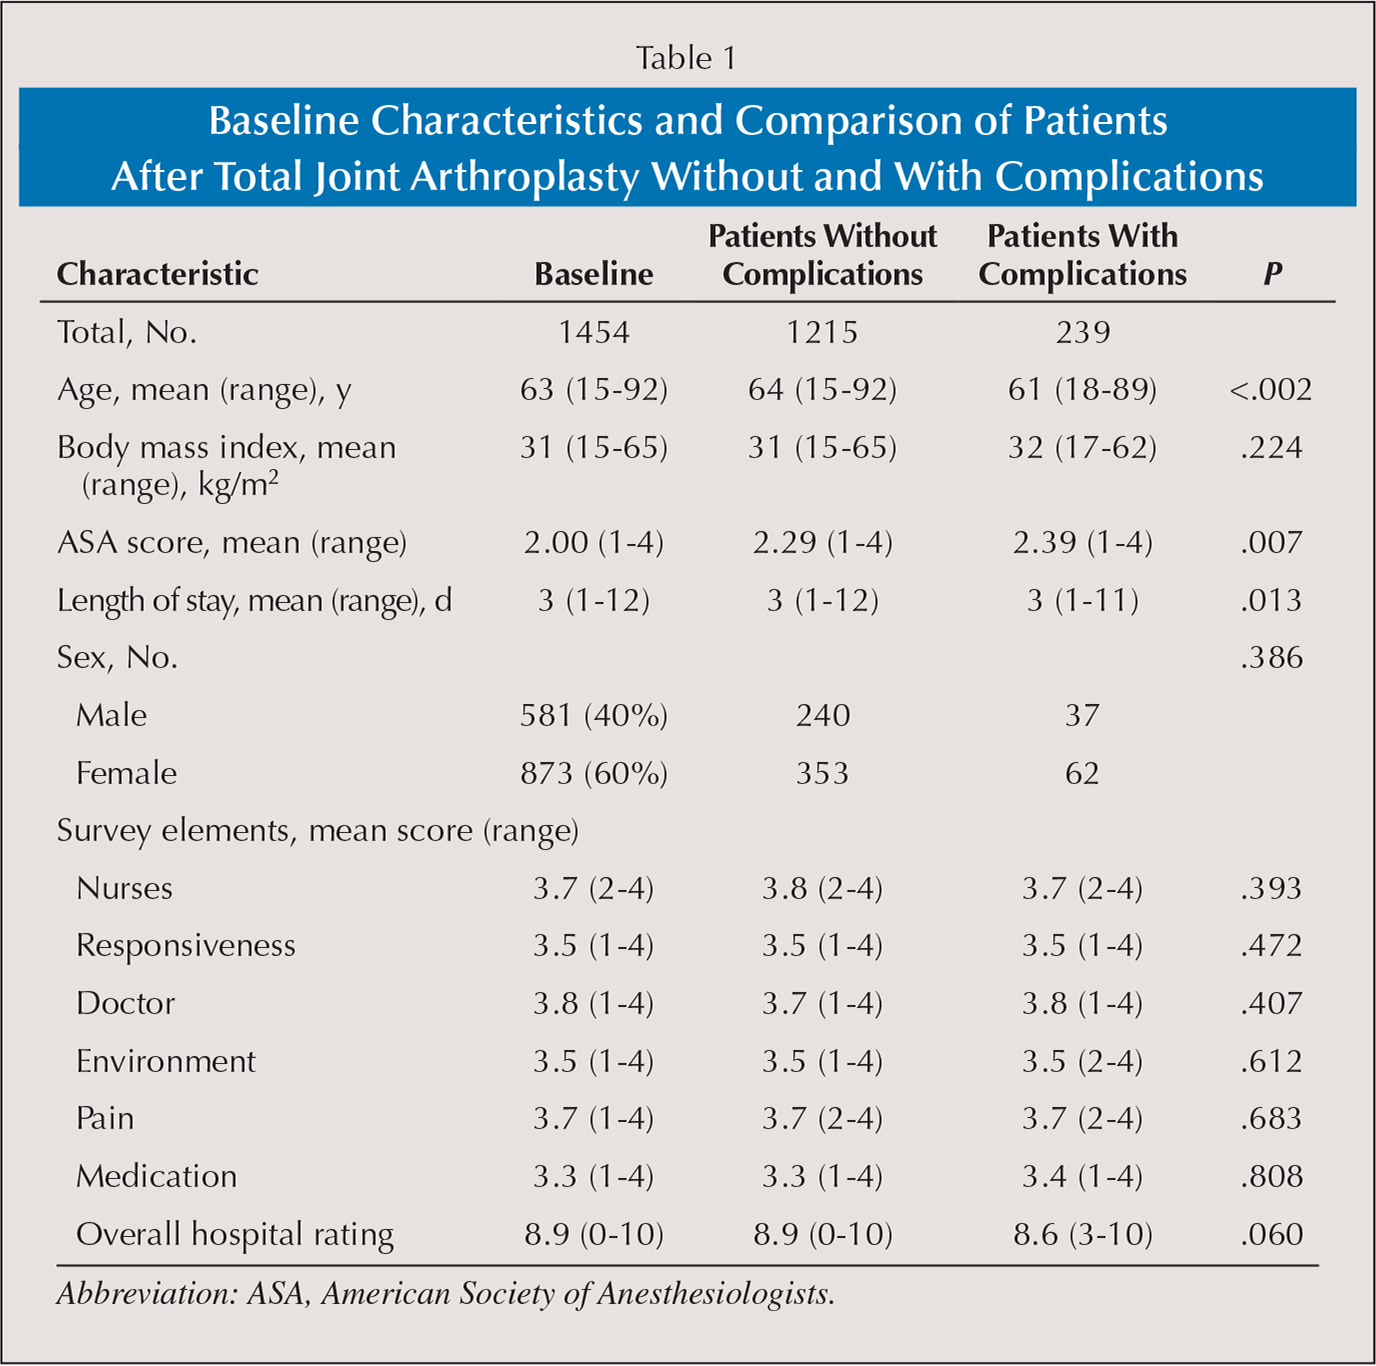 Baseline Characteristics and Comparison of Patients After Total Joint Arthroplasty Without and With Complications